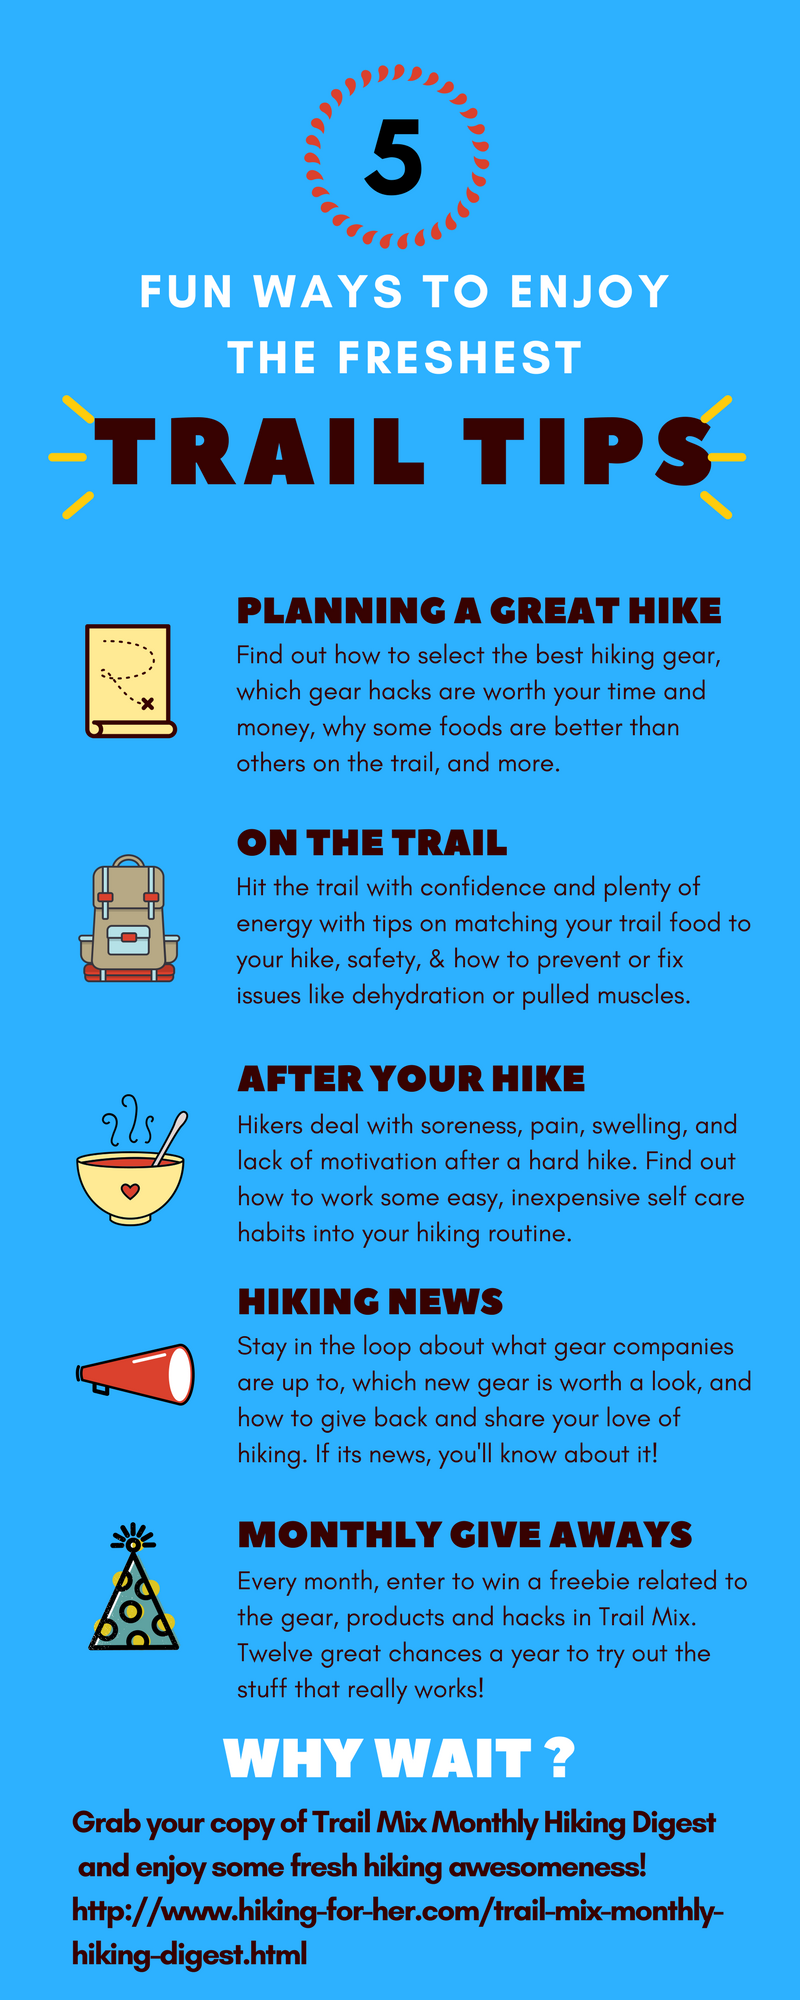 Trail Mix is the best way to get detailed hiking tips, trail news, and a chance to win the gear and products highlighted each month. Check it out, from Hiking For Her!